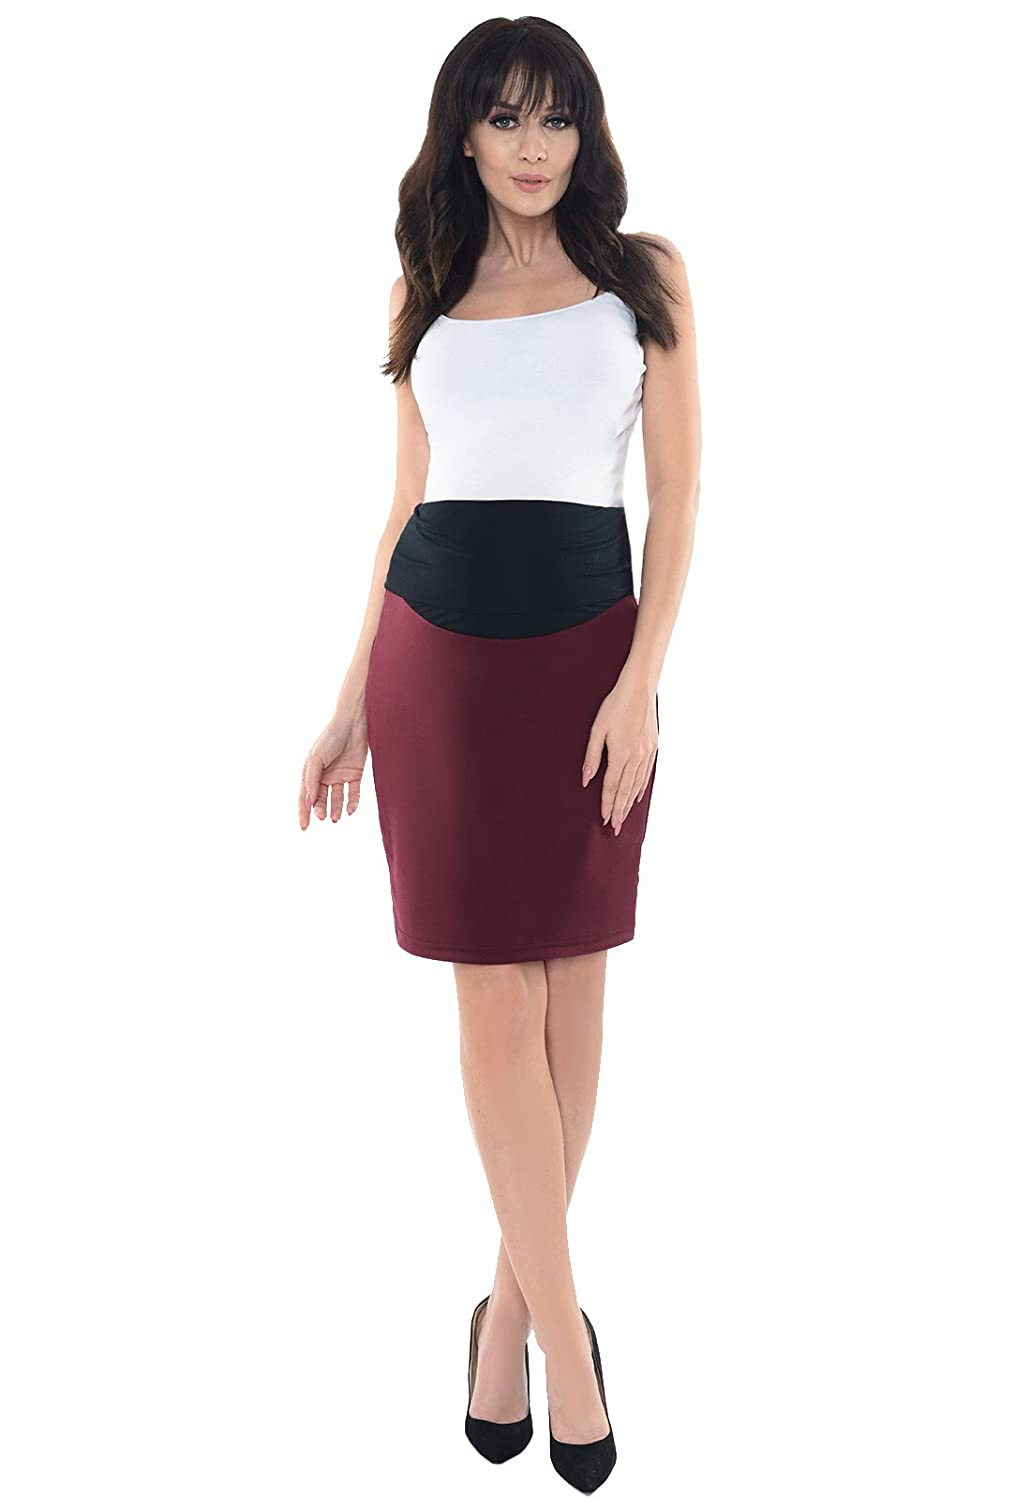 17fb2522a635f Purpless Maternity Formal Pencil Midi Skirt Over Under Belly Office Work  1504 at Amazon Women's Clothing store: